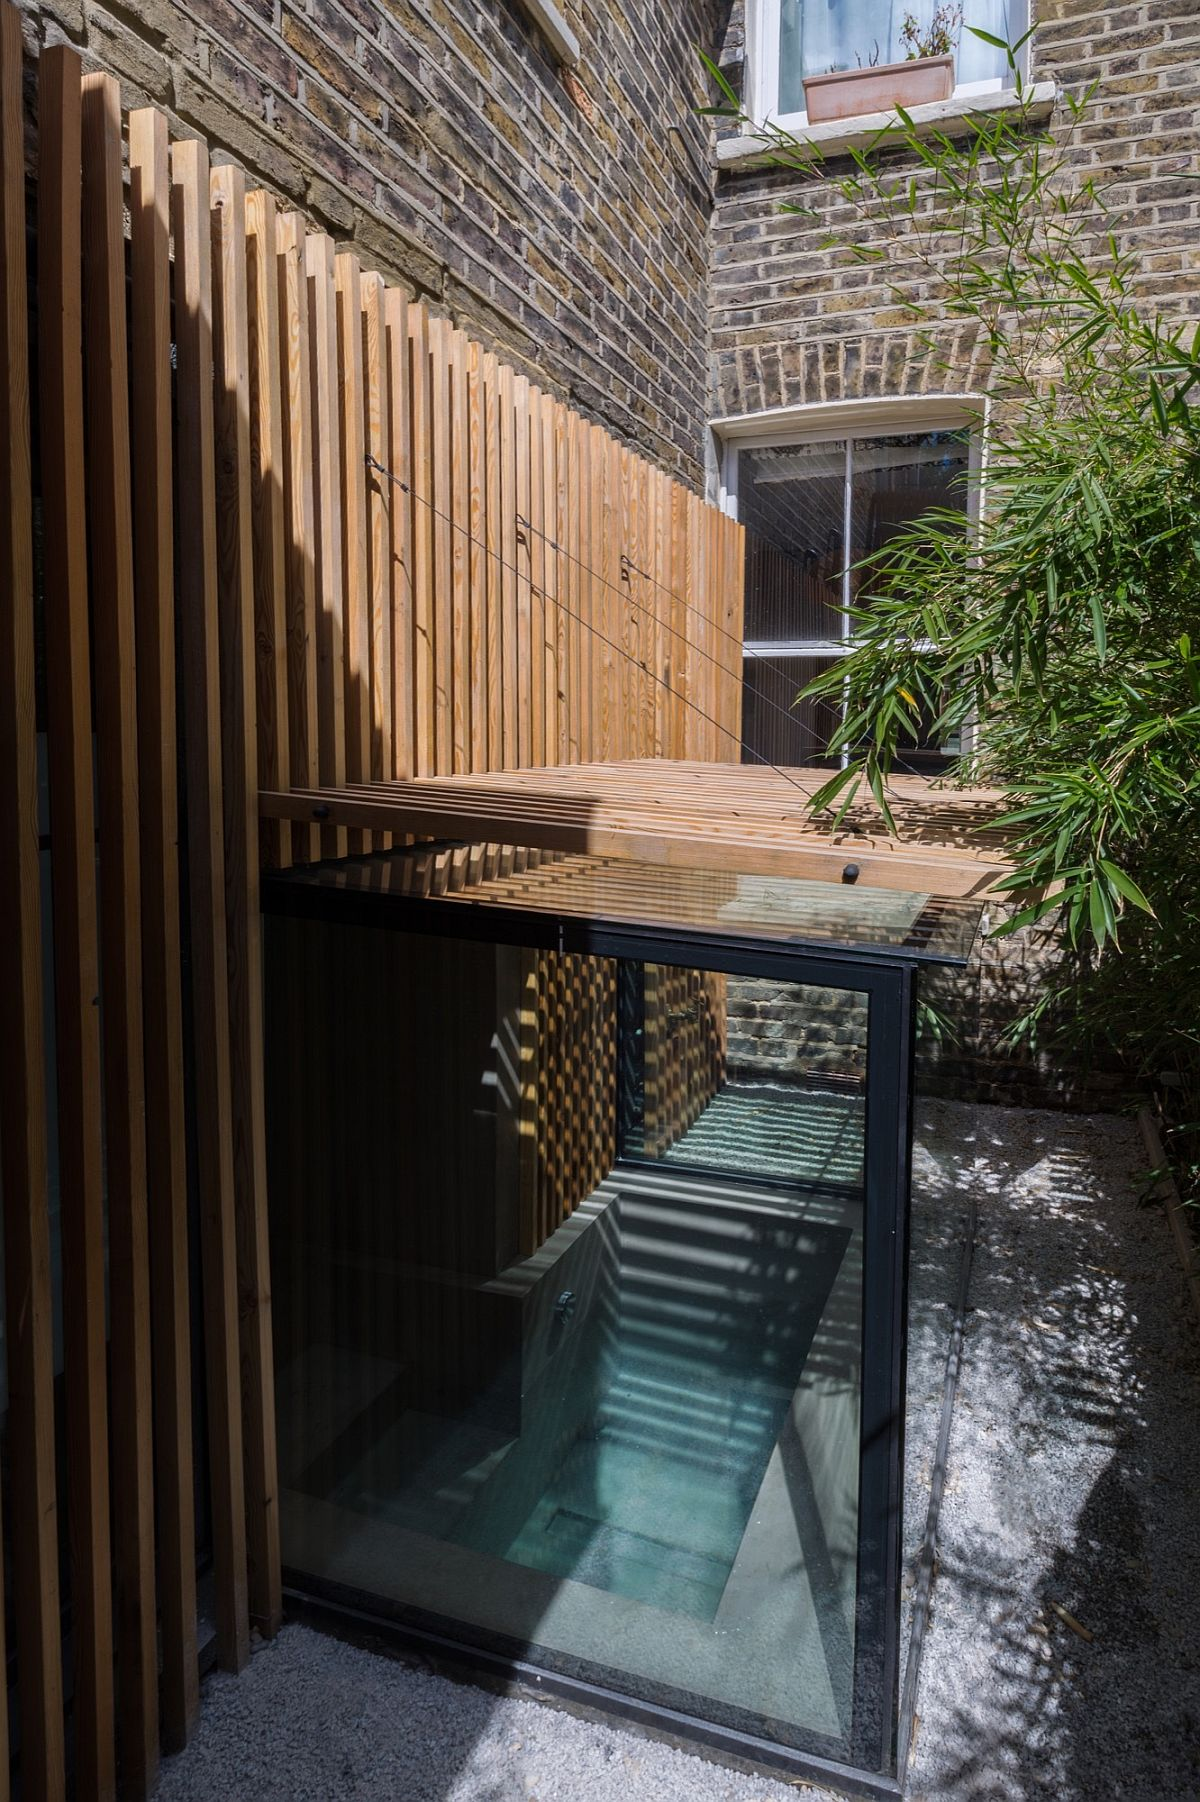 Glass walls connect teh sunken bath with the garden even as the slatted larch screen offers privacy